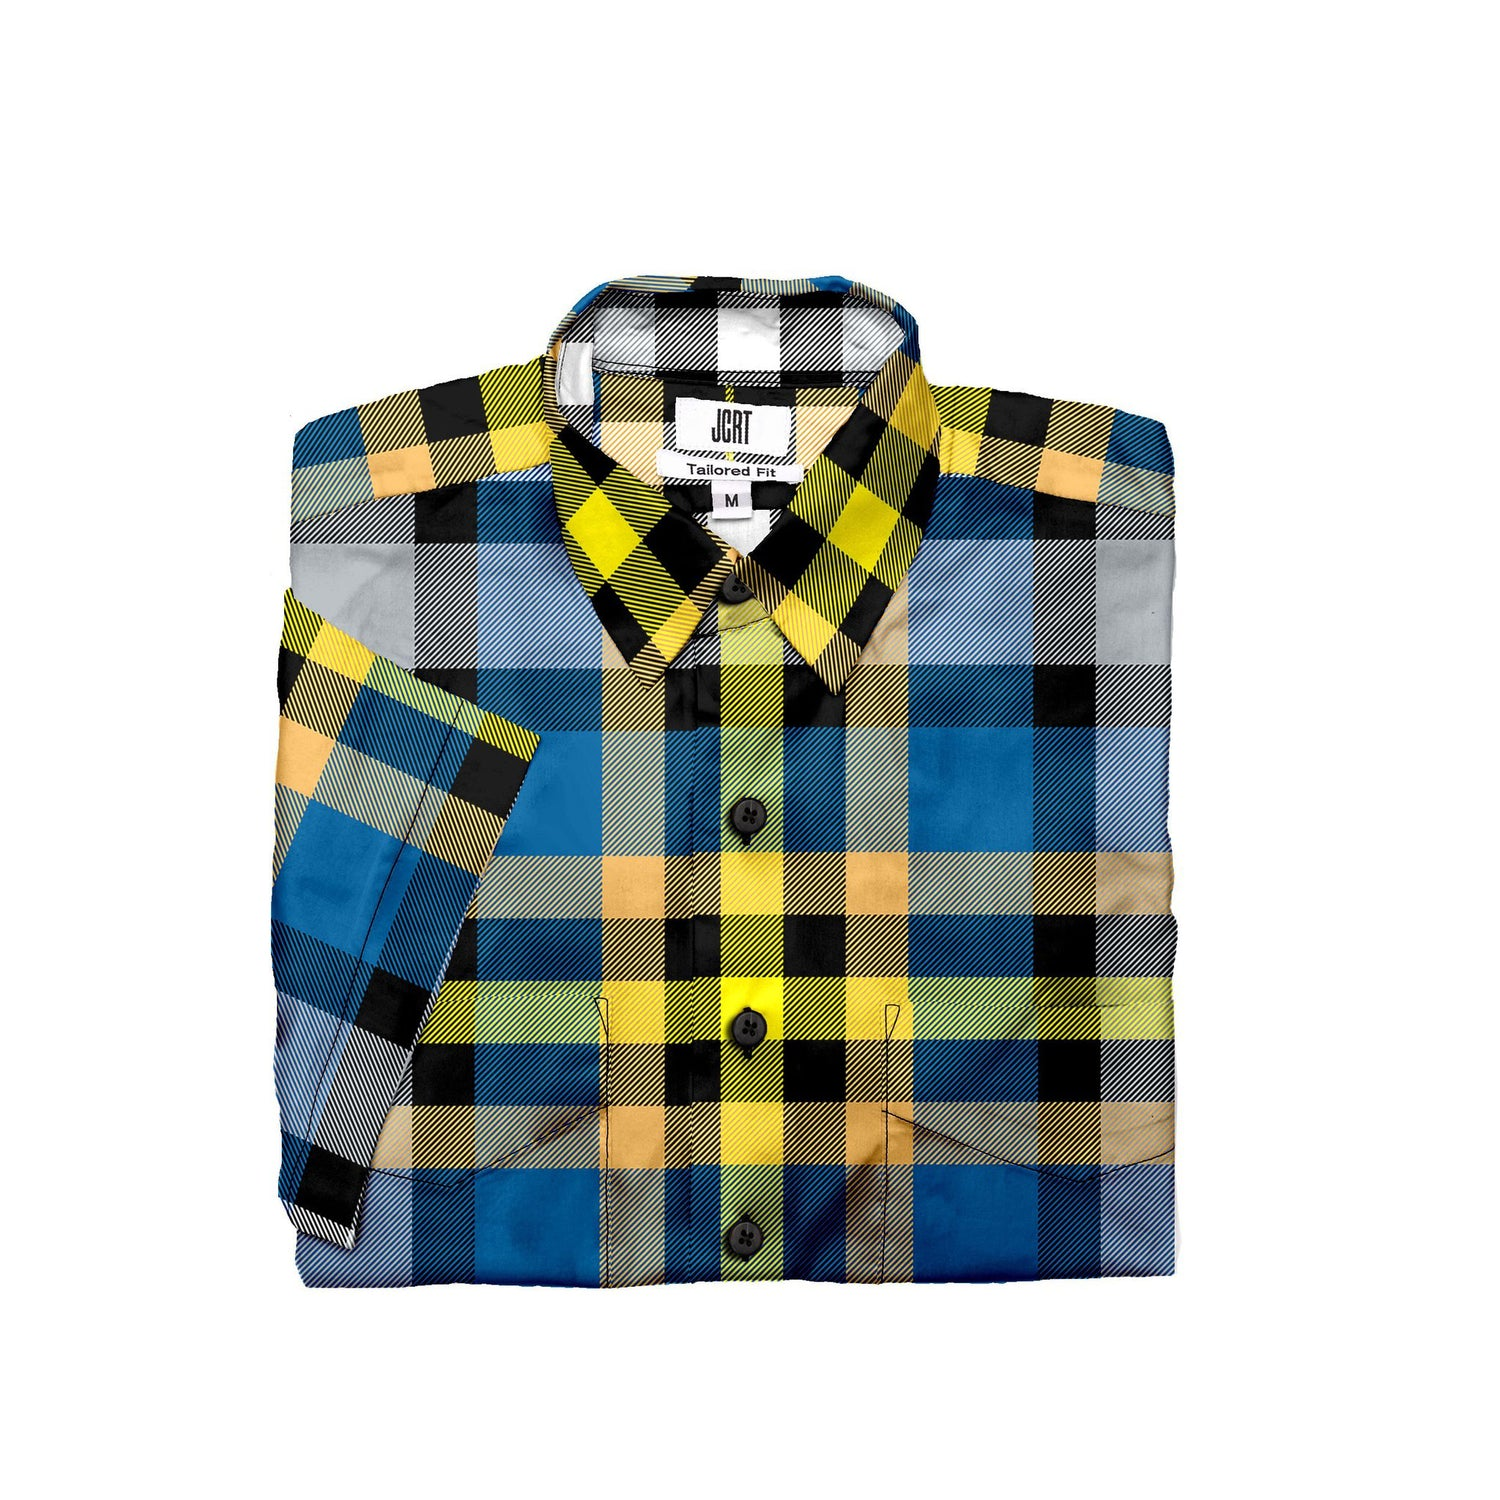 The Vintage Batman Plaid Short Sleeve Shirt